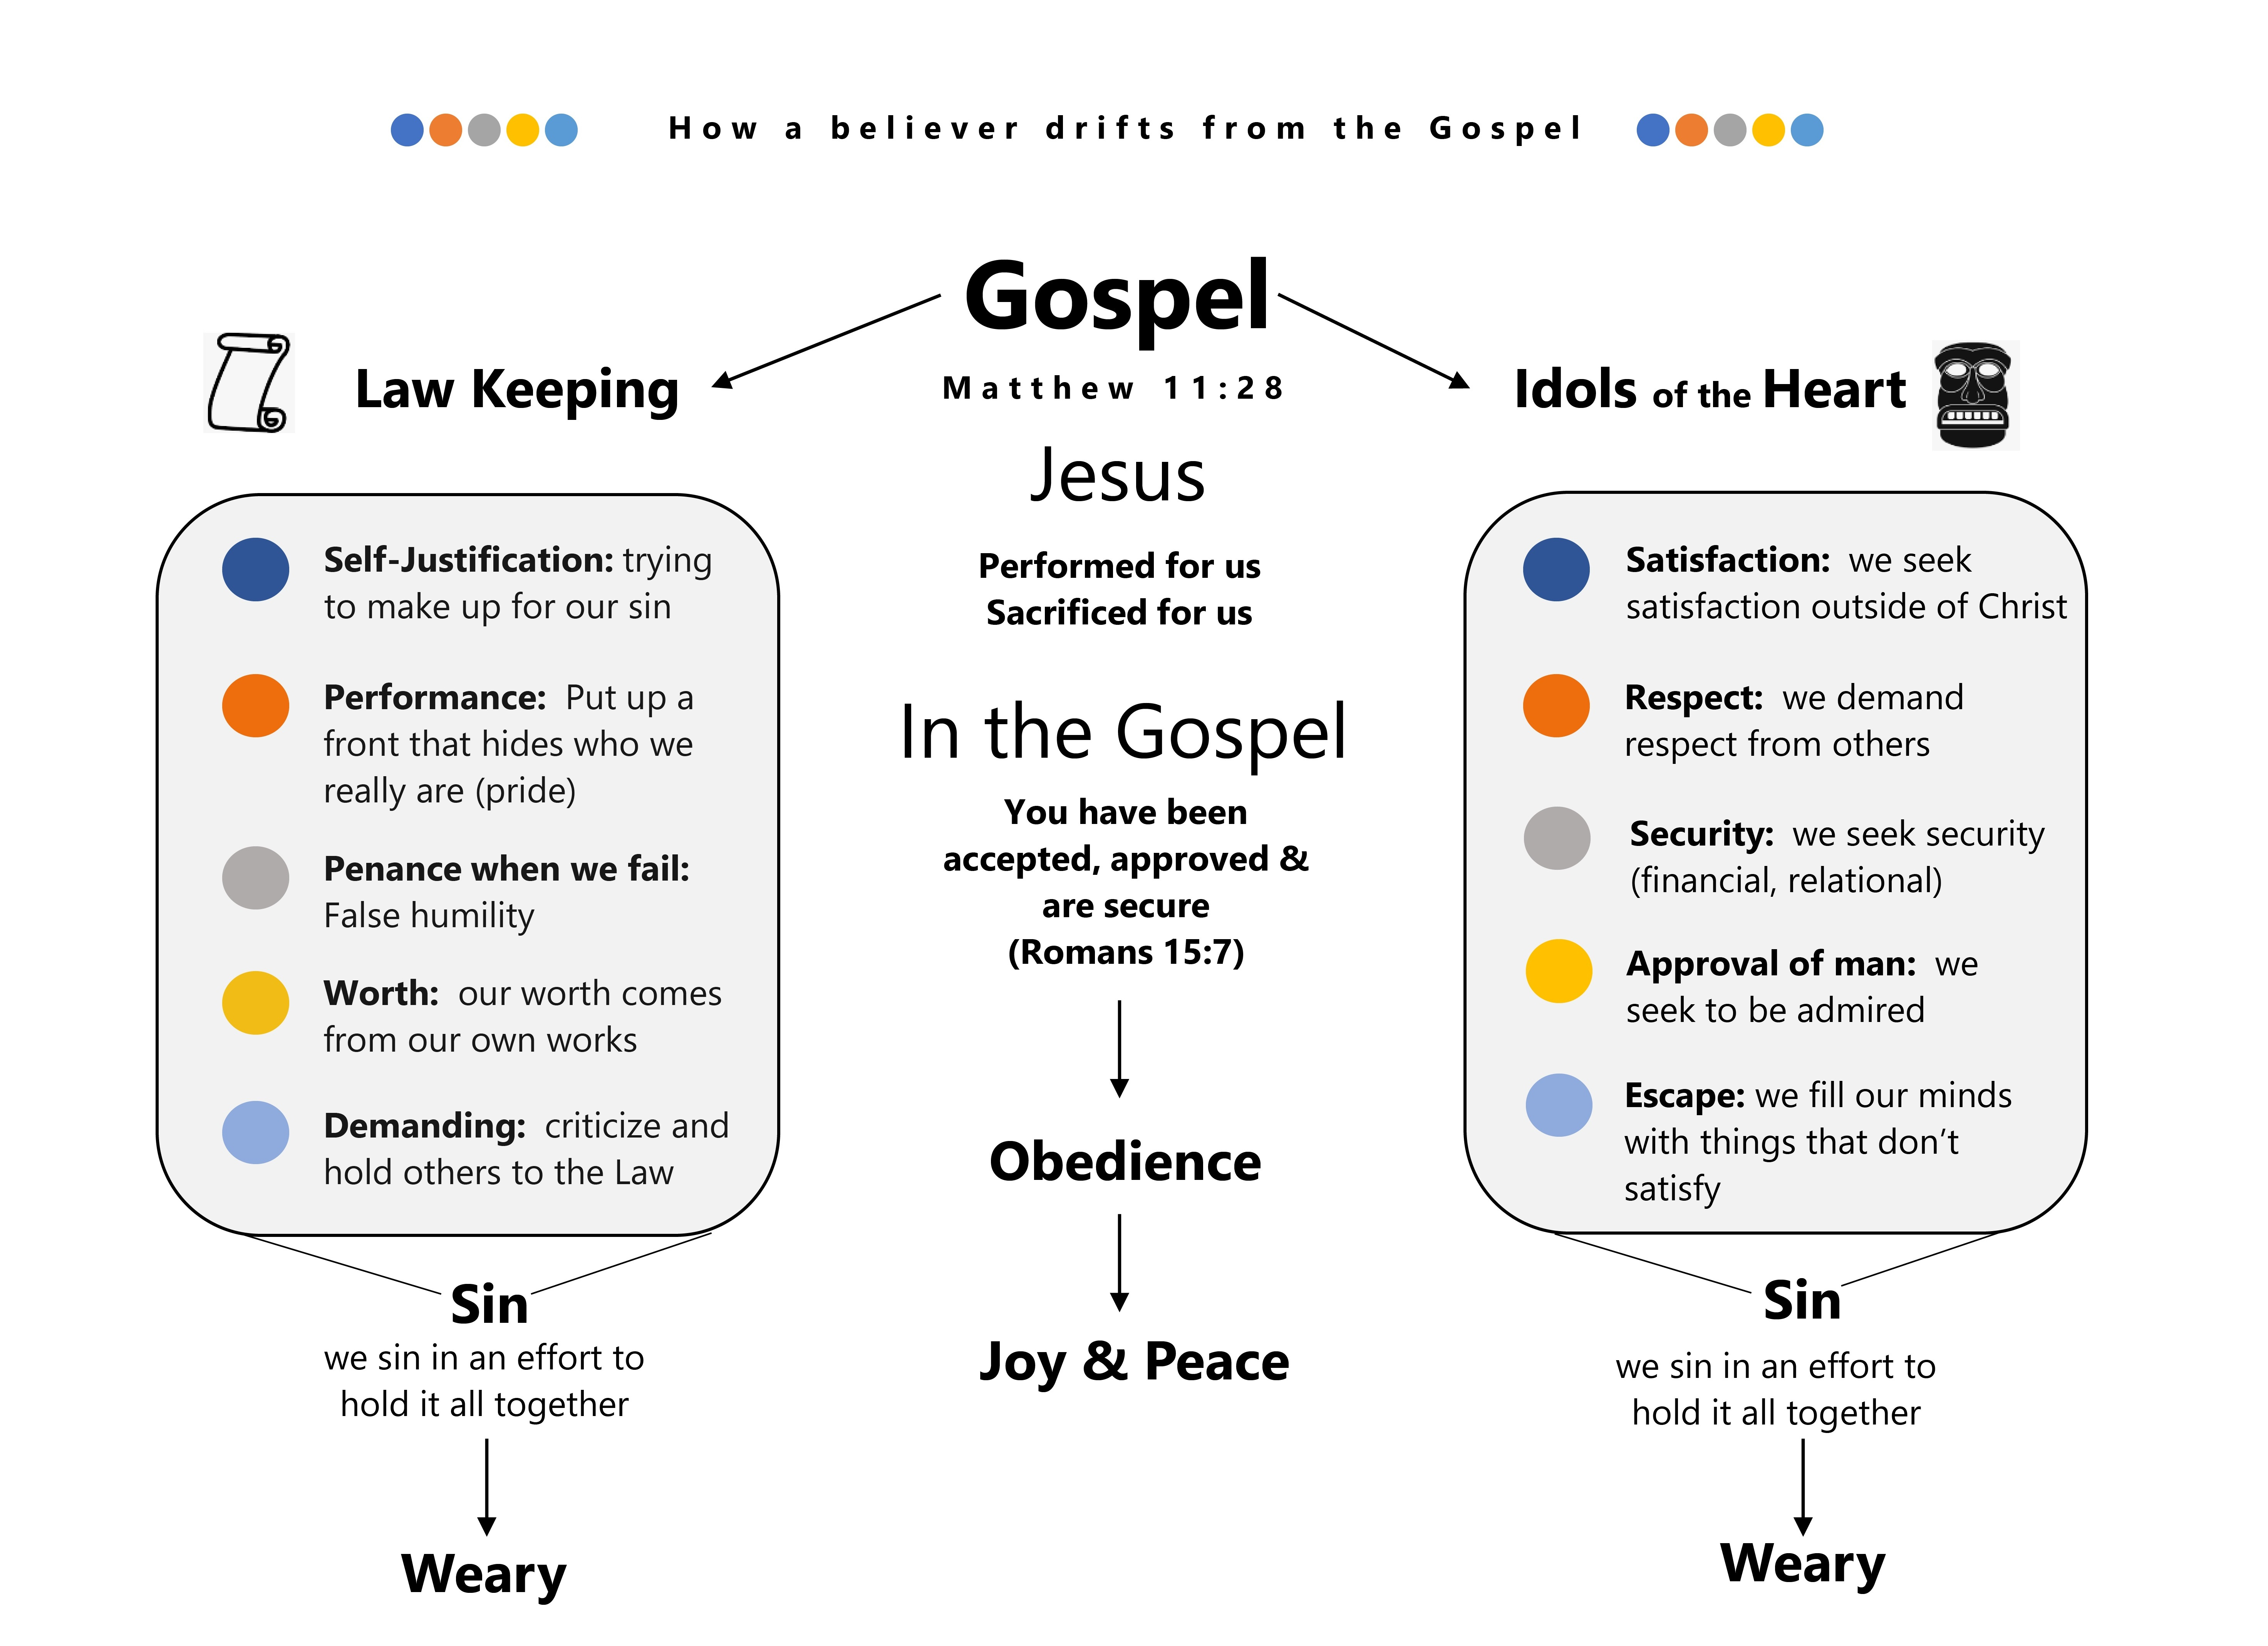 How a Believer Drifts from the Gospel